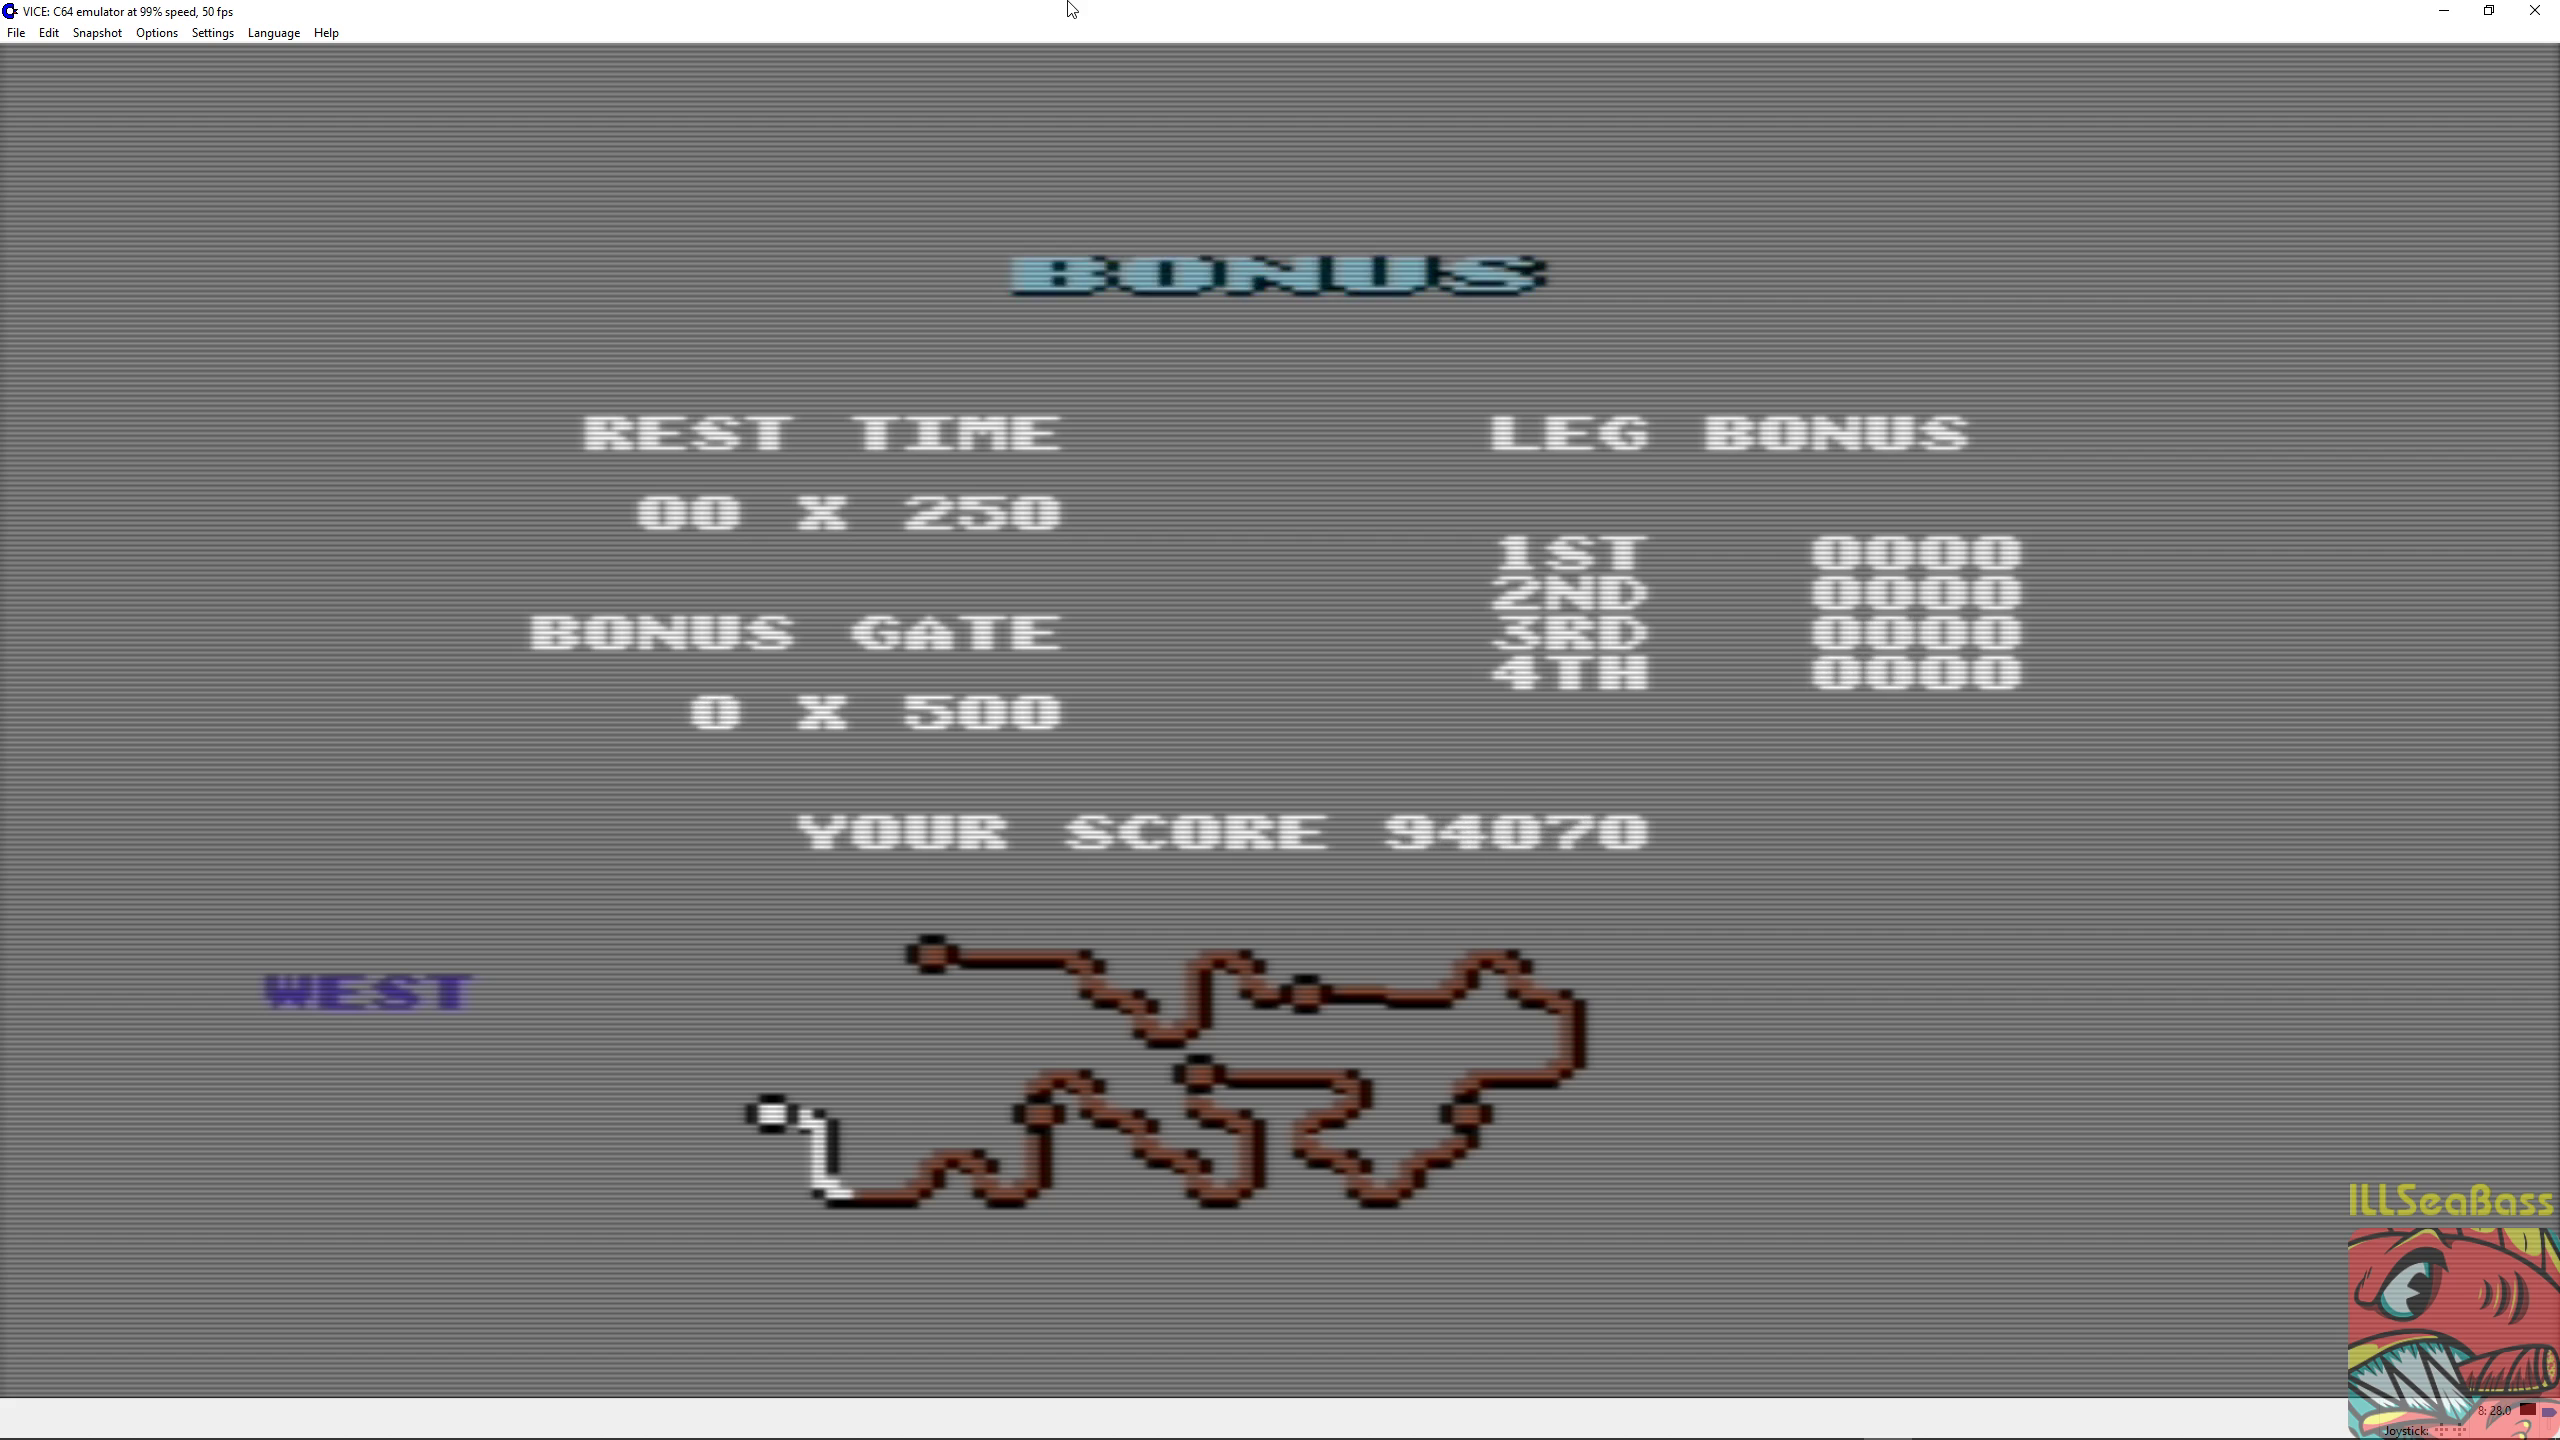 ILLSeaBass: Buggy Boy: West (Commodore 64 Emulated) 94,070 points on 2018-07-07 21:50:19